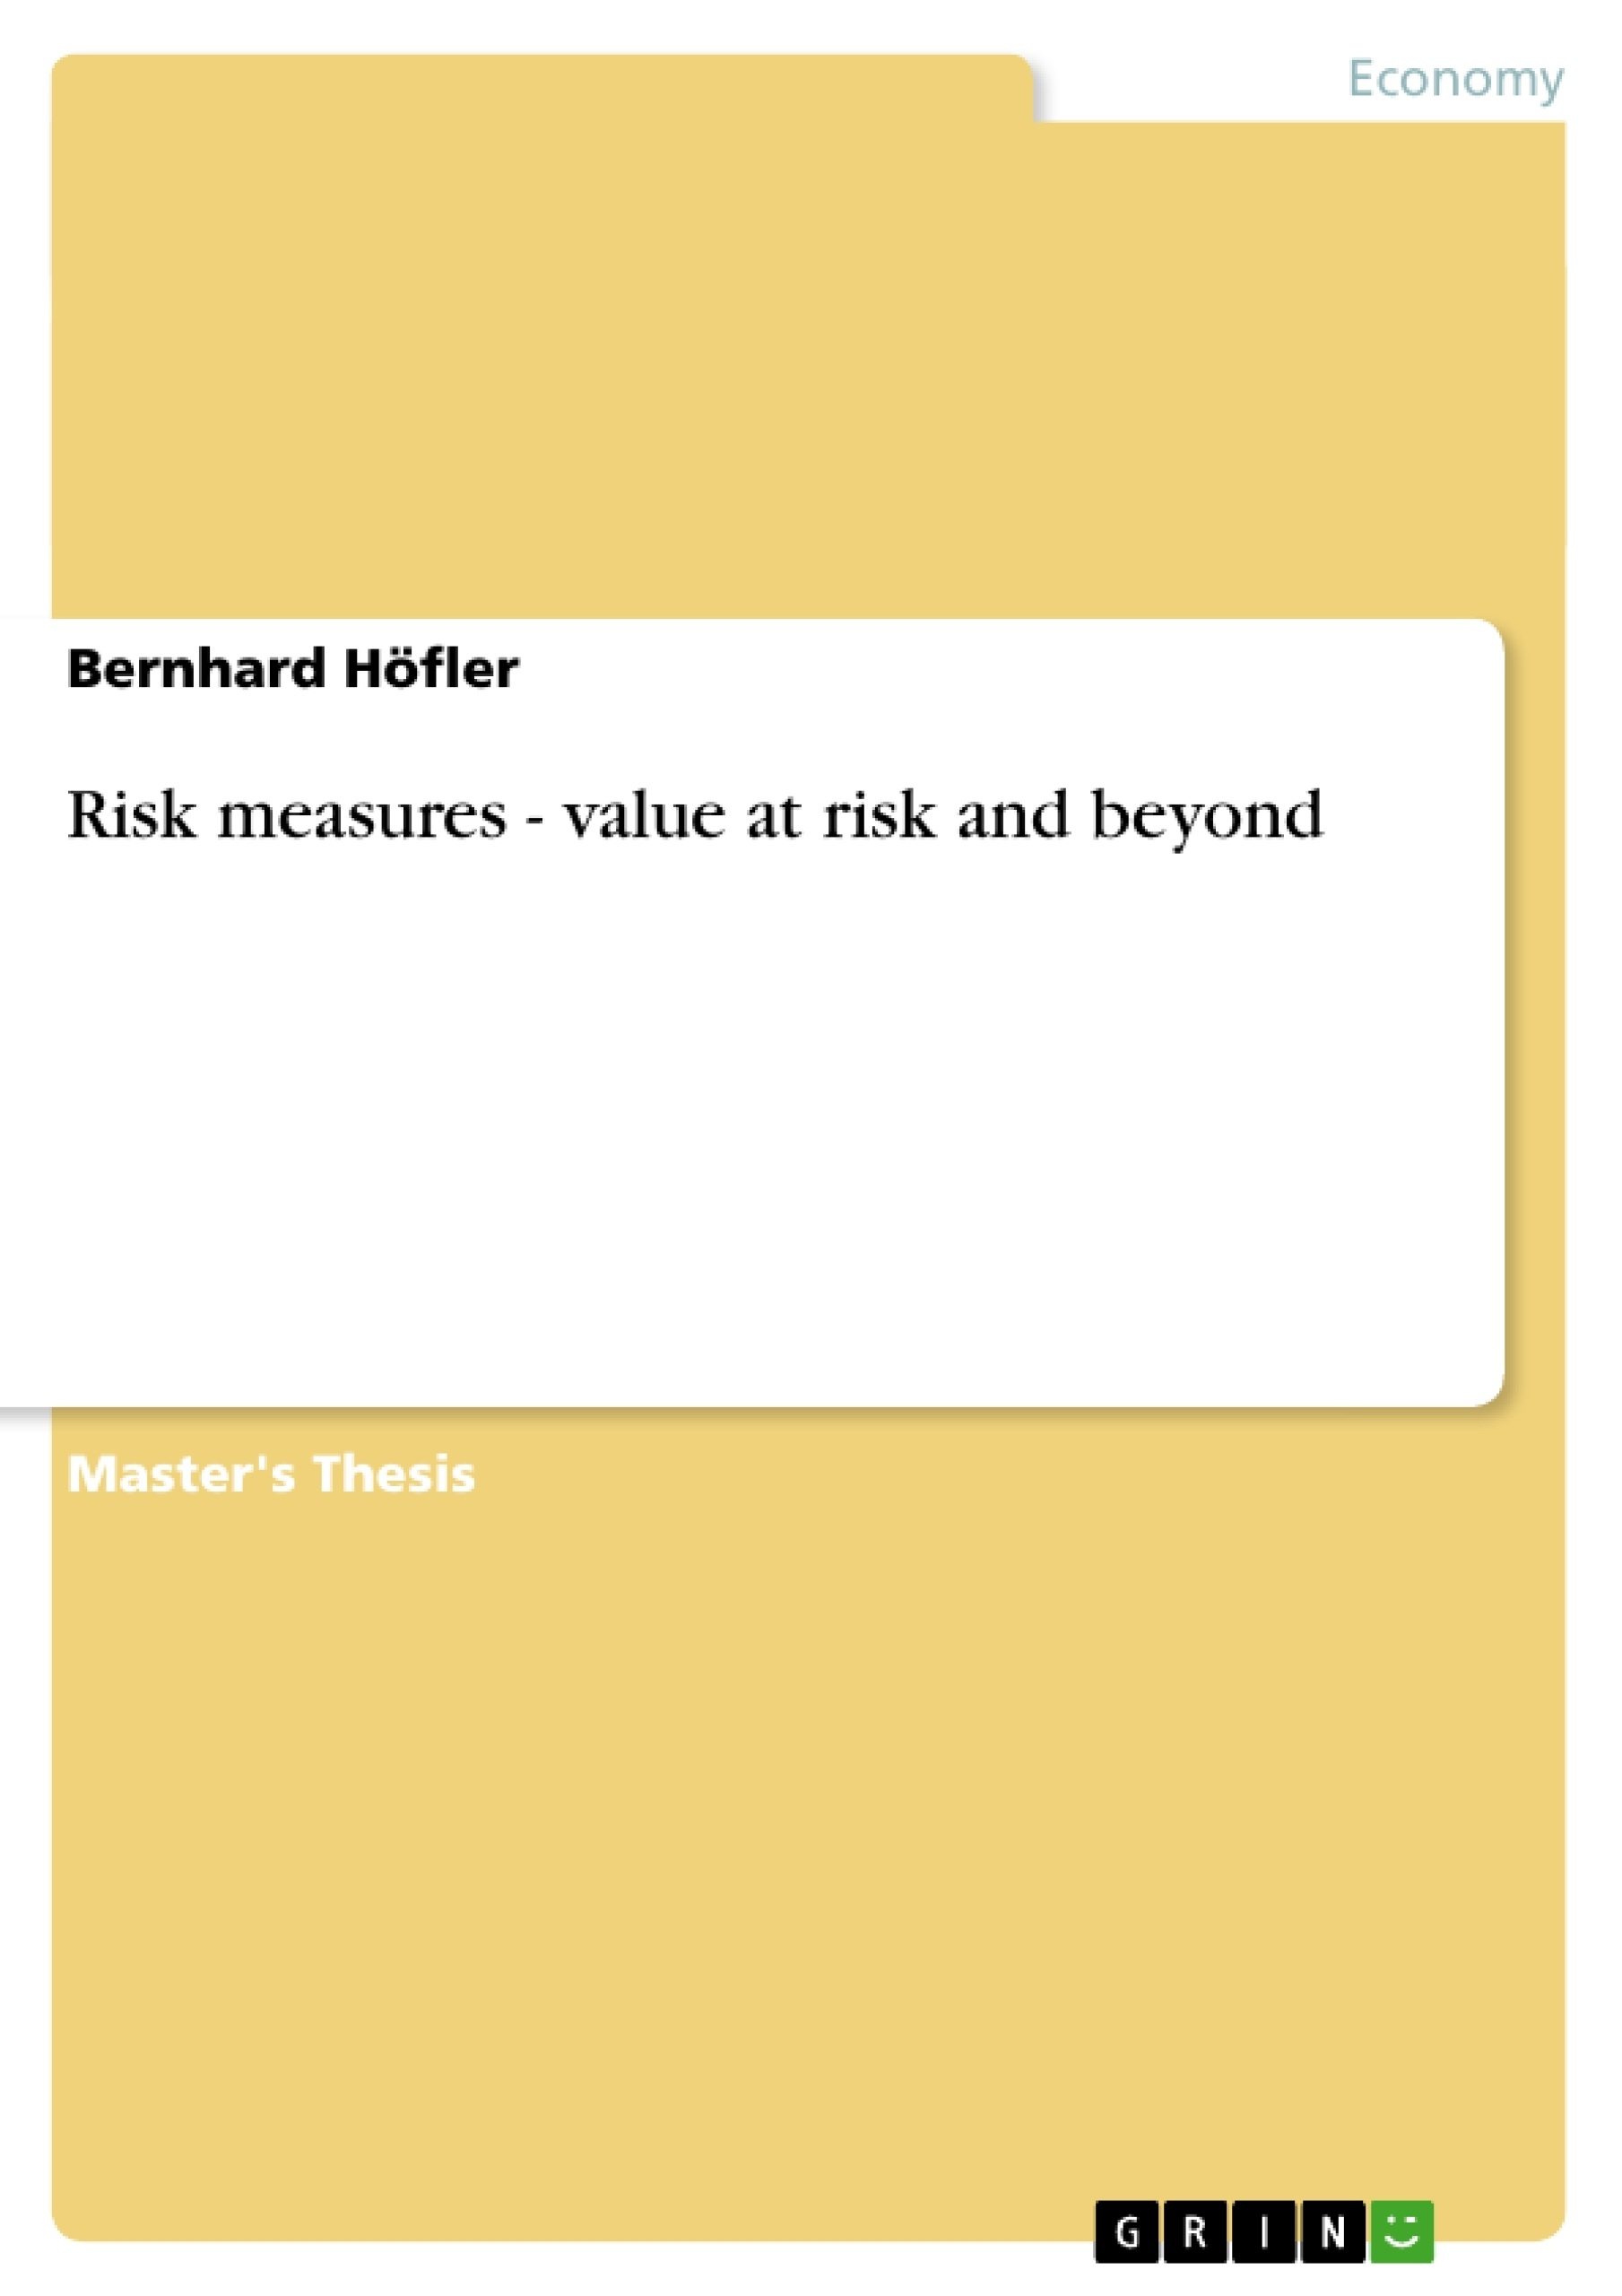 Title: Risk measures - value at risk and beyond